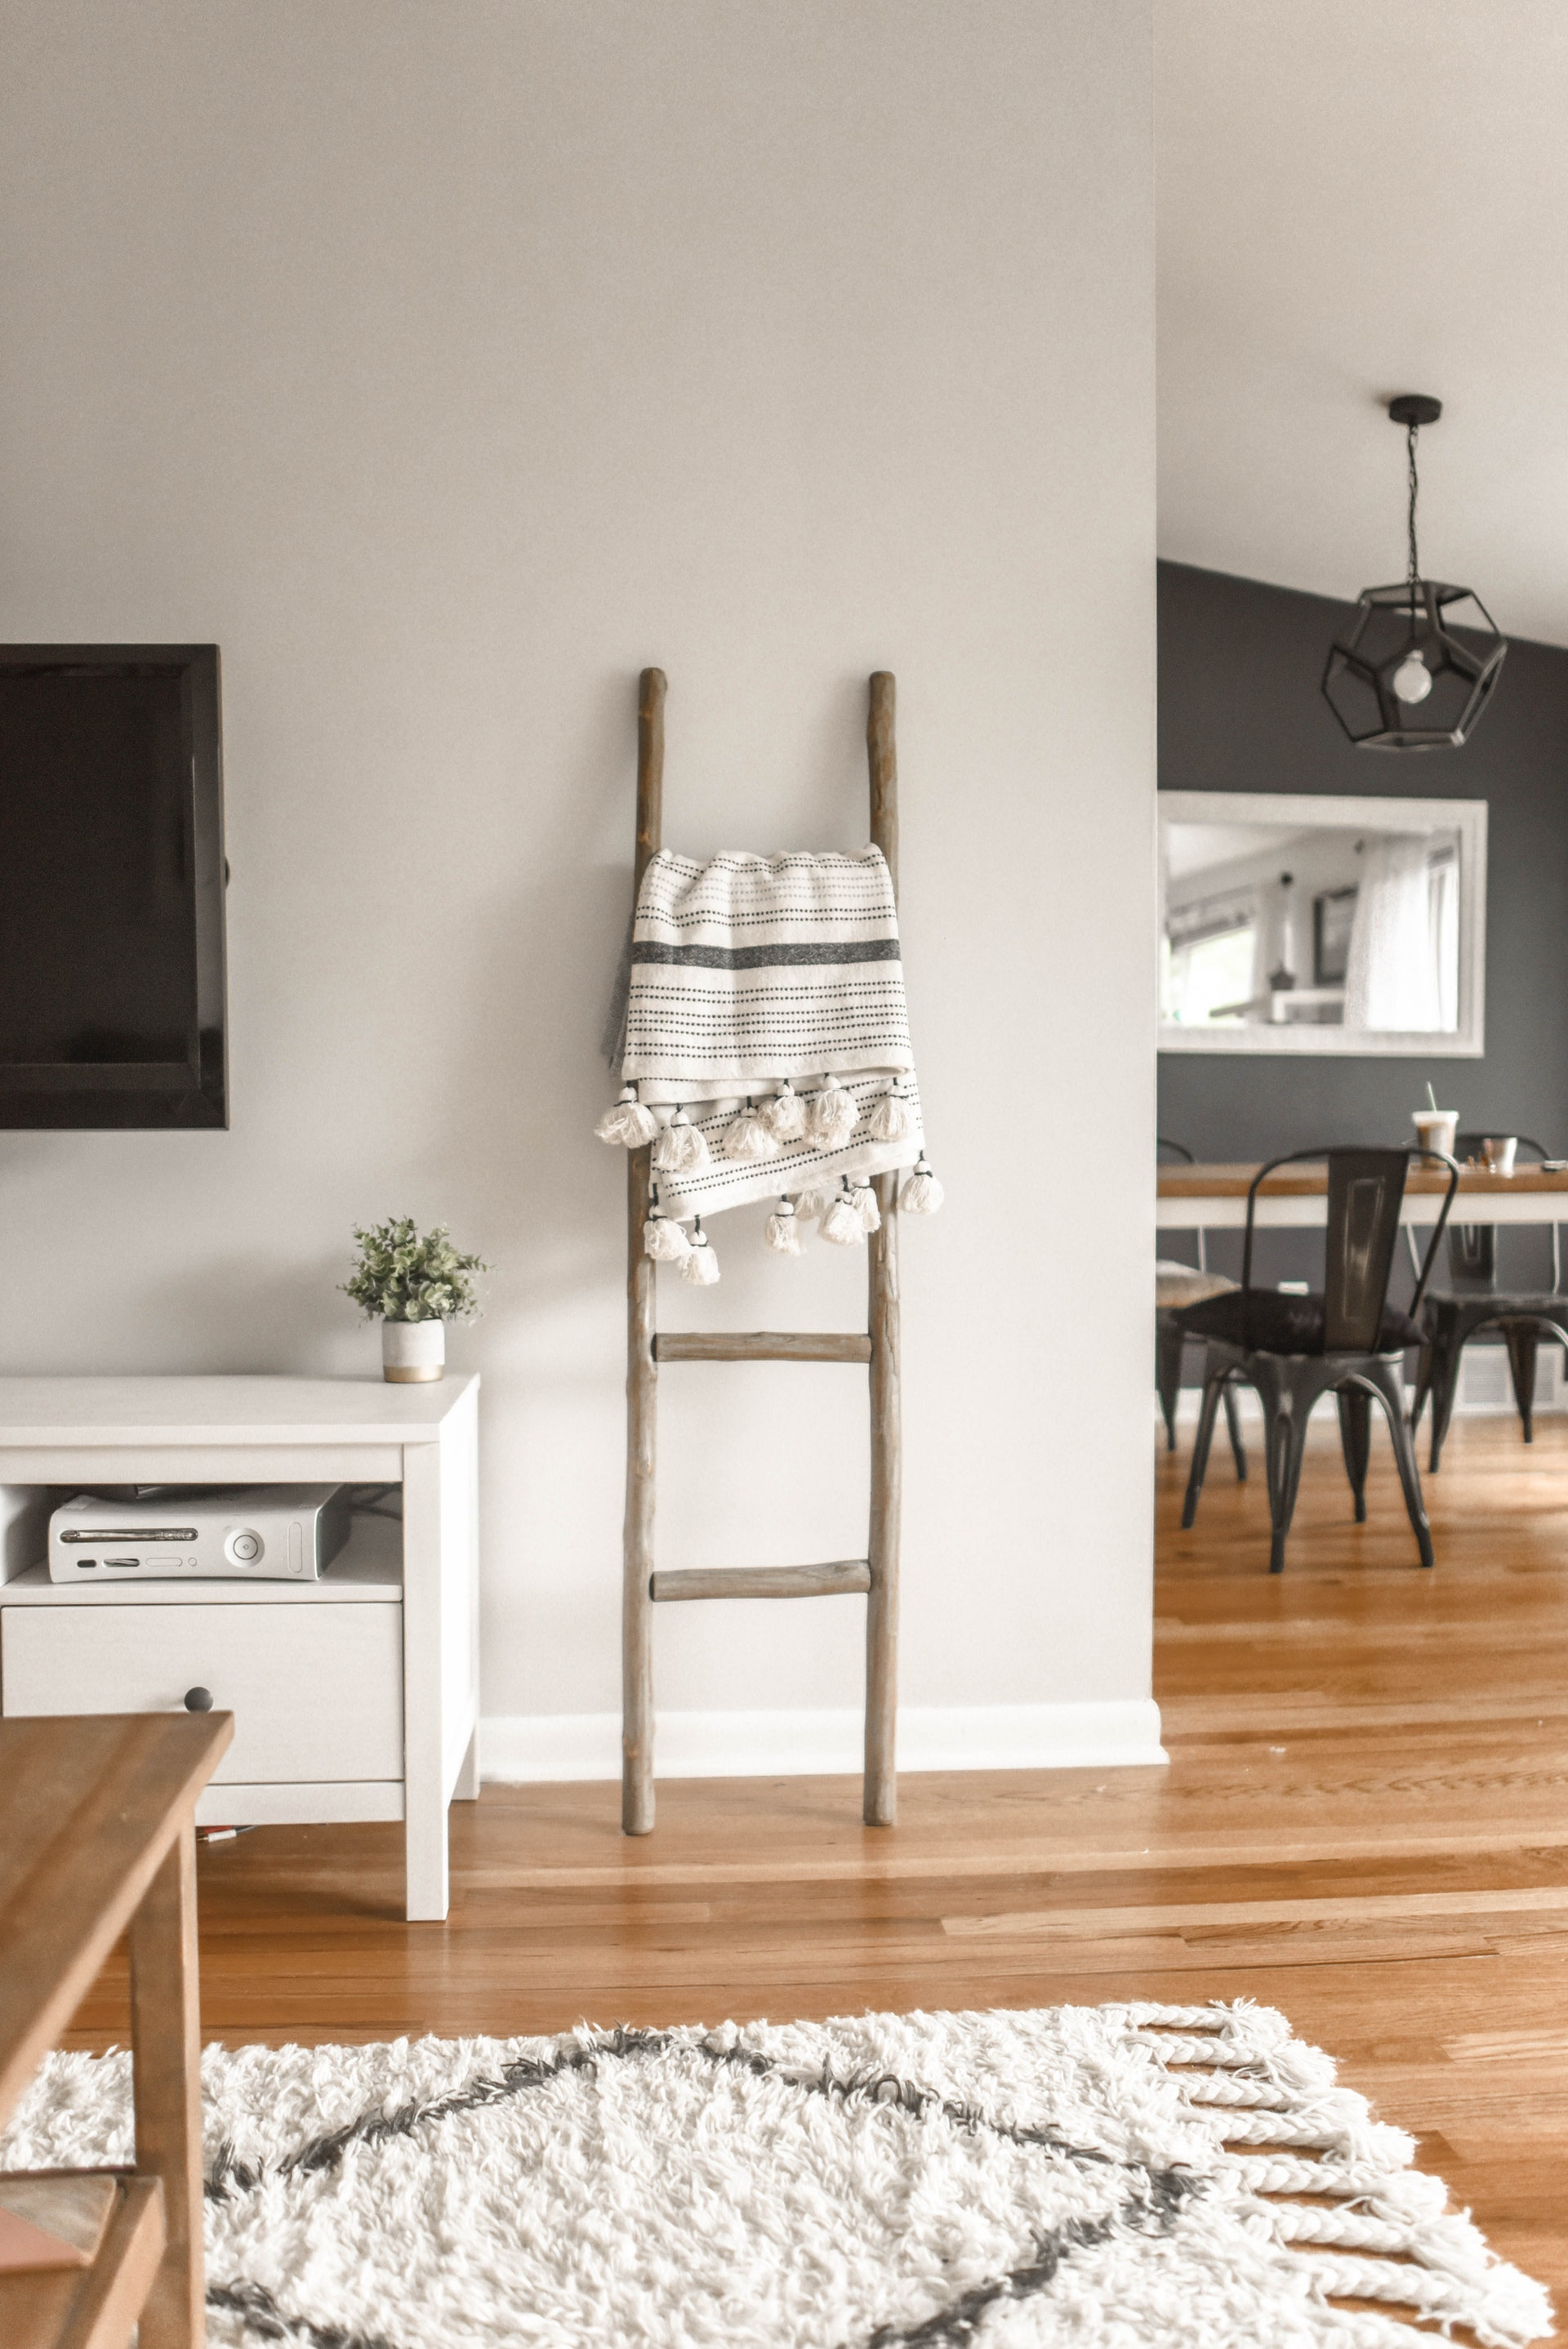 5 Ways to Create a Beautiful Farmhouse-Style Interior for Your Home